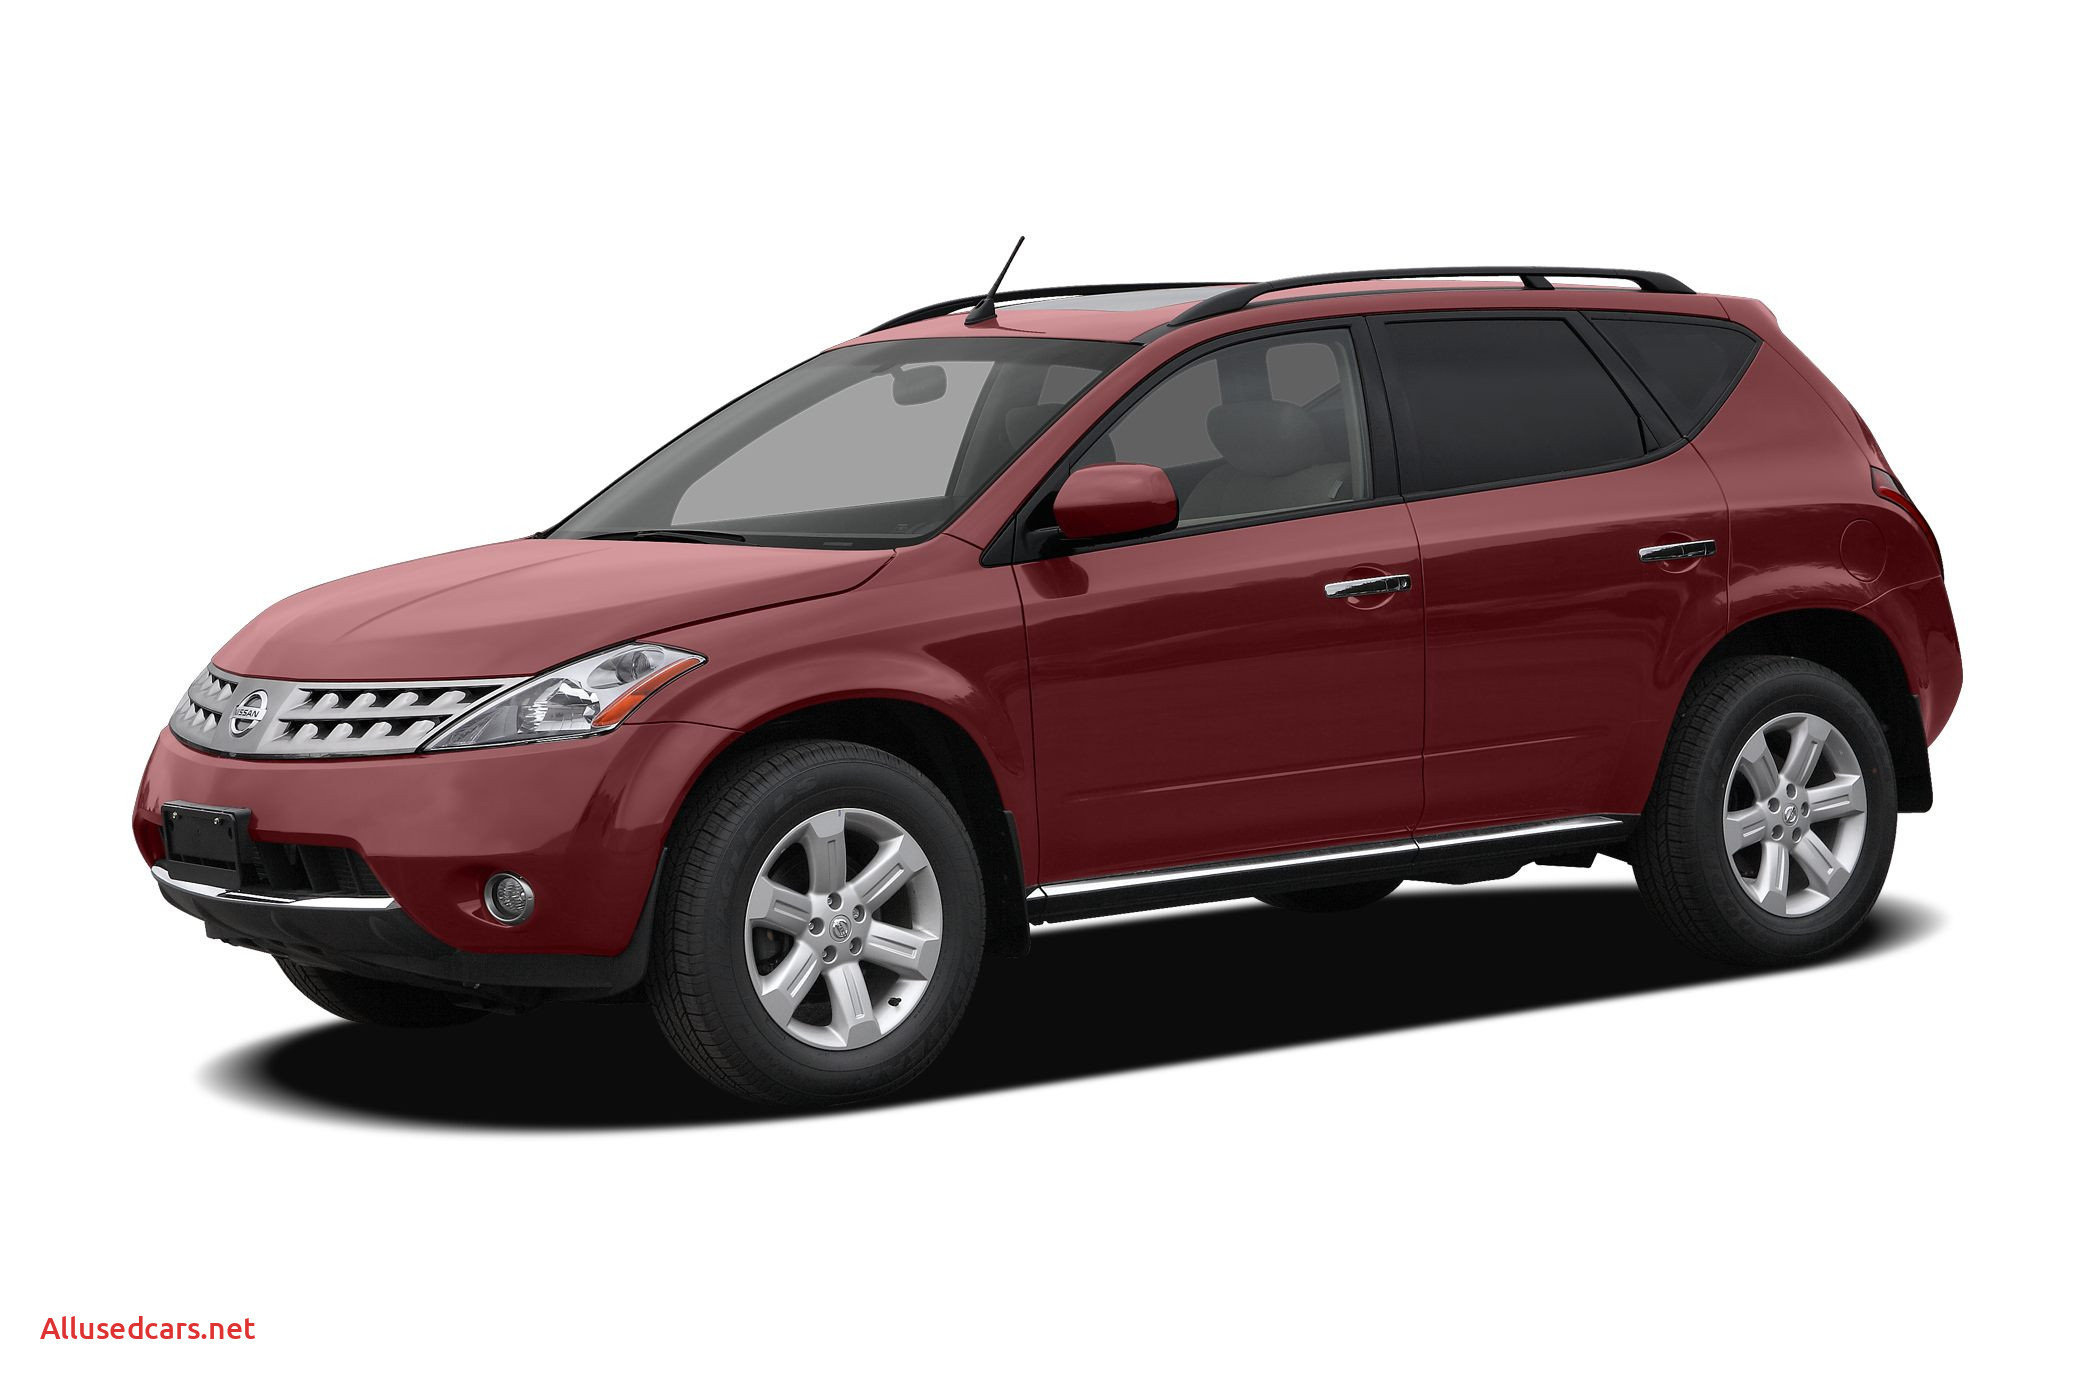 2005 Nissan Murano Reviews New 2007 Nissan Murano Owner Reviews and Ratings